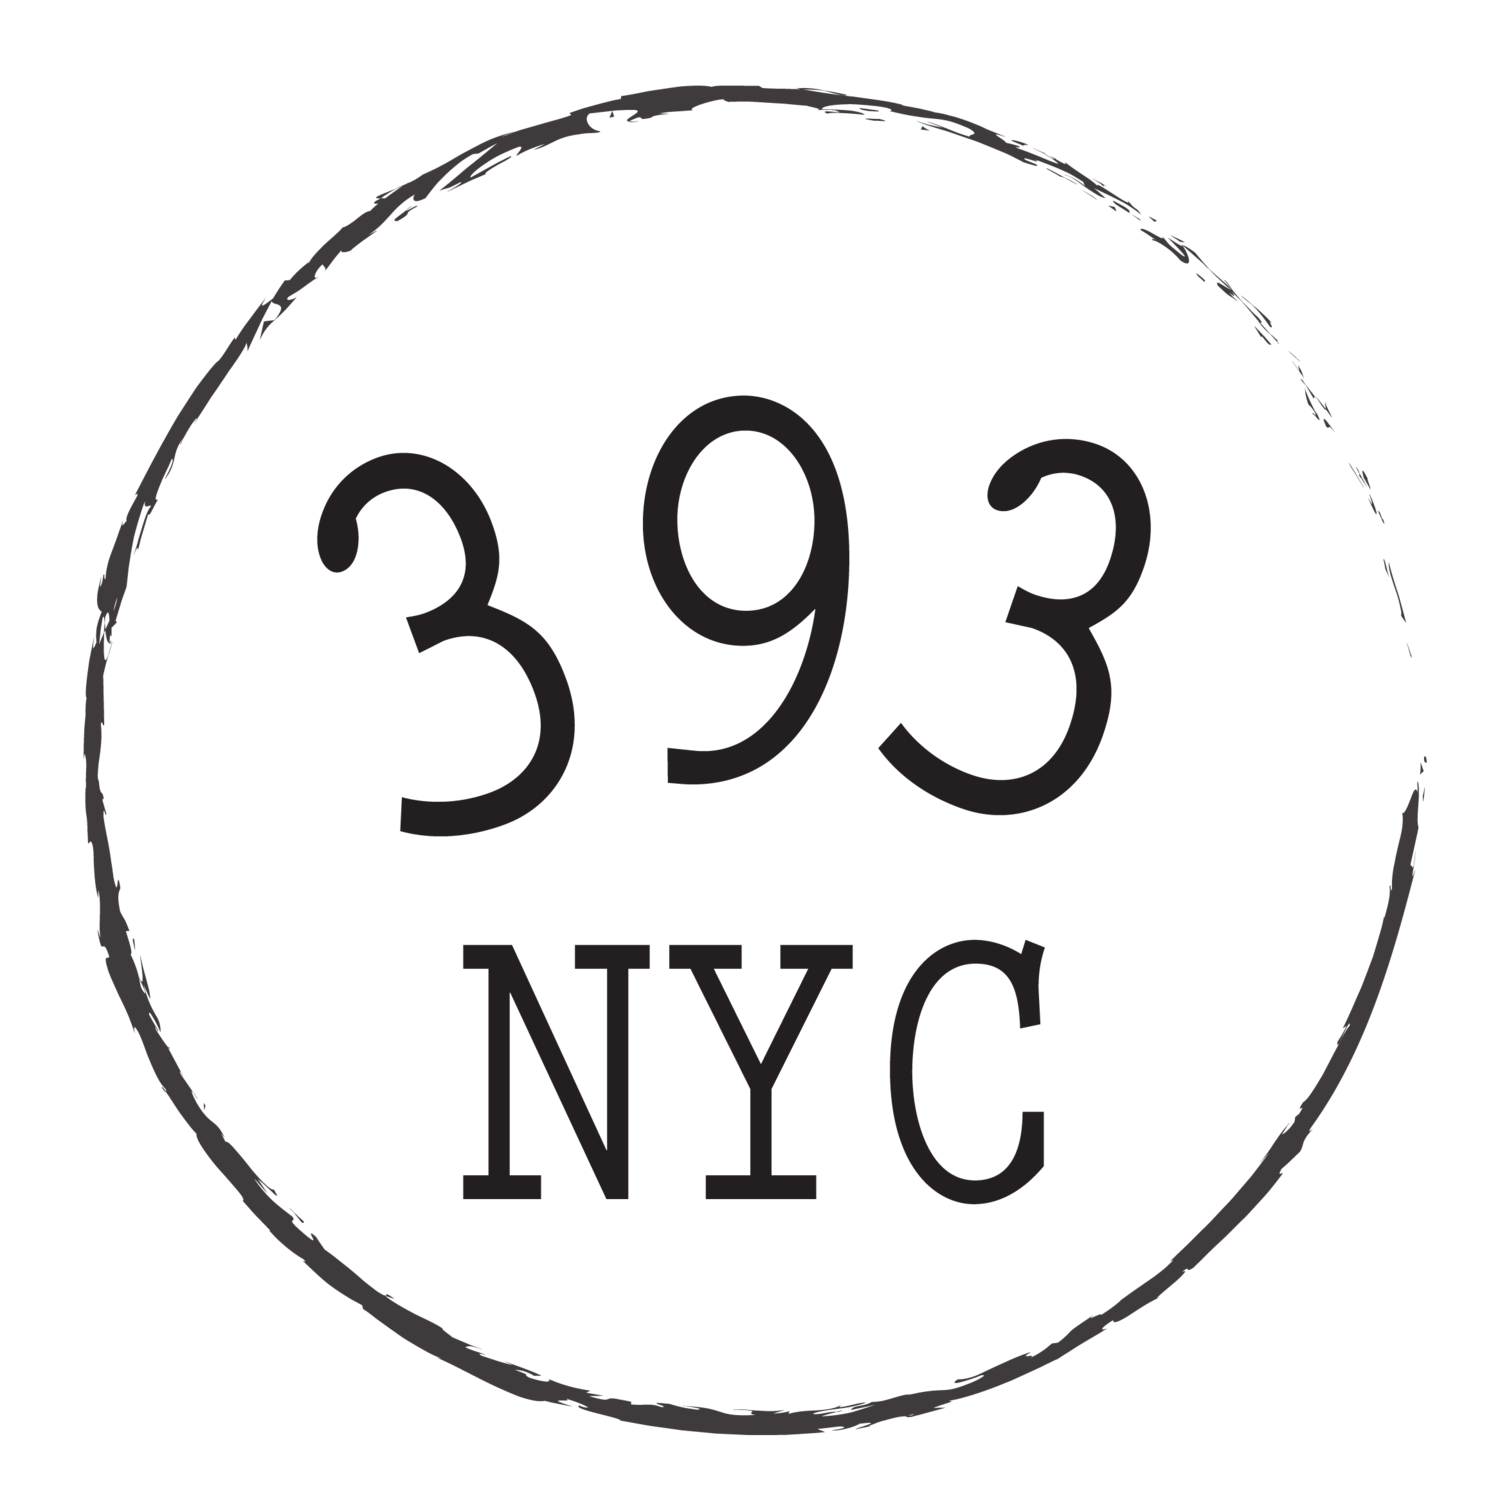 393 NYC Pop Up Space